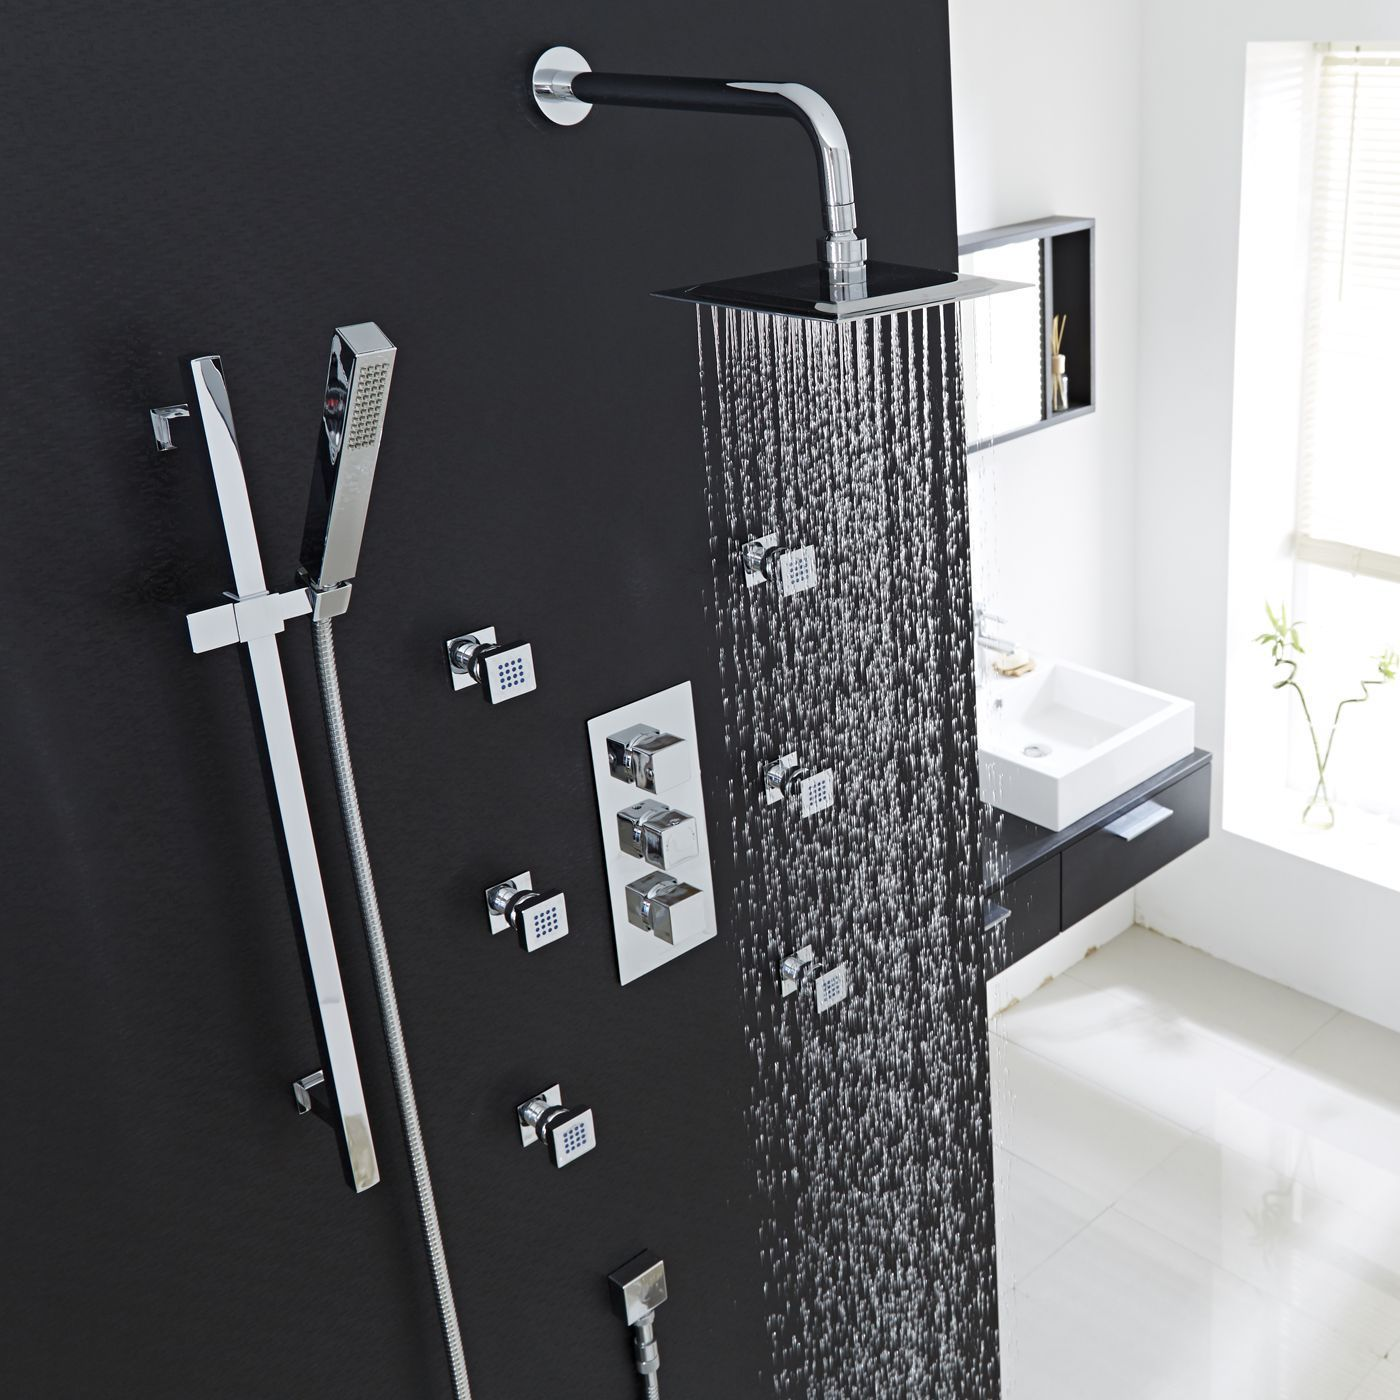 thermostatic shower system with slider rail kit wall arm 6 body jets. Black Bedroom Furniture Sets. Home Design Ideas